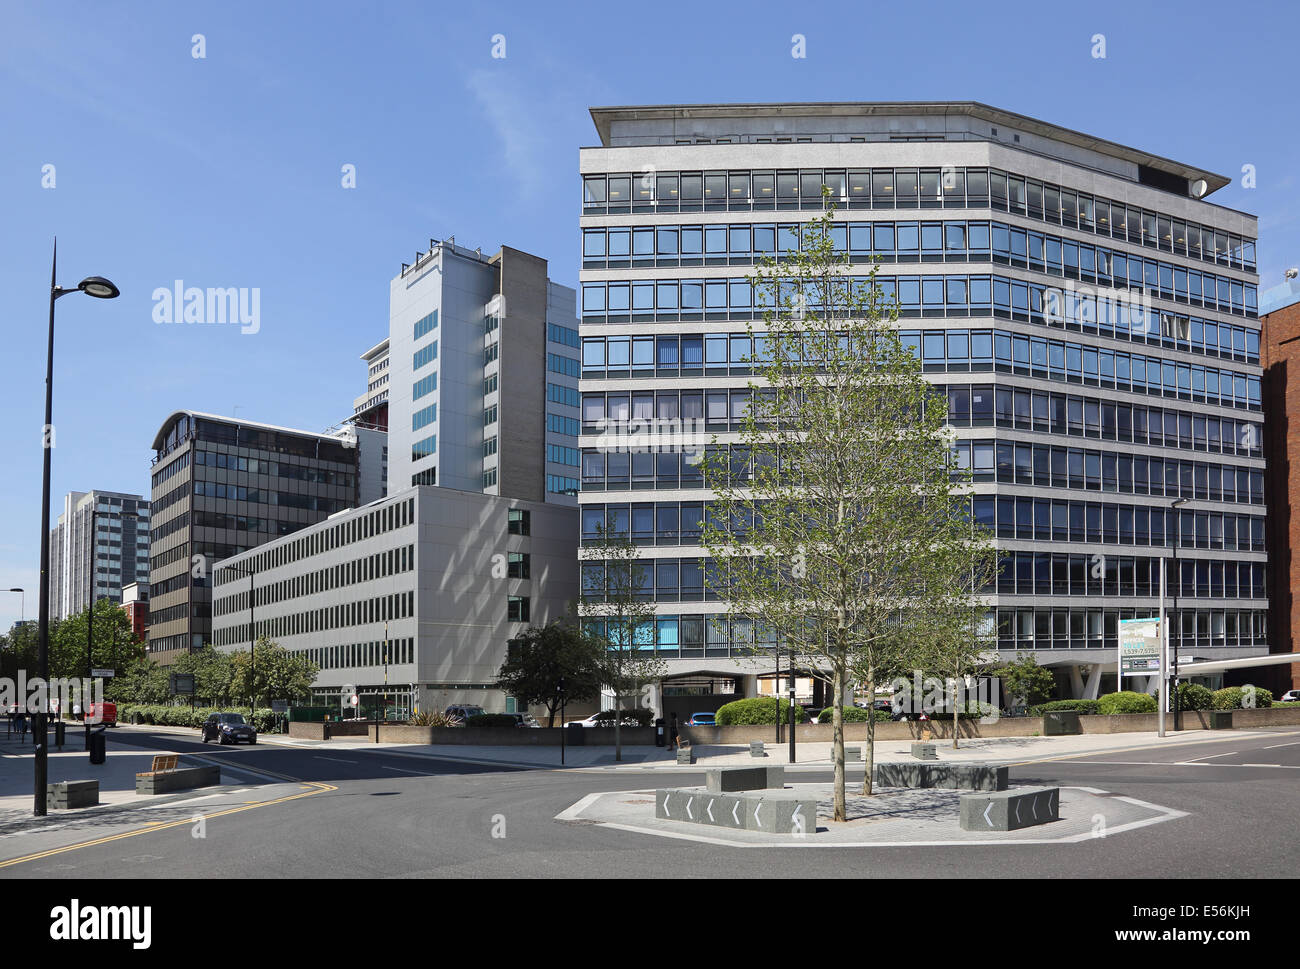 Dingwall Road Croydon. Newly redeveloped junction with new landscaping and refurbished office blocks near East Croydon - Stock Image